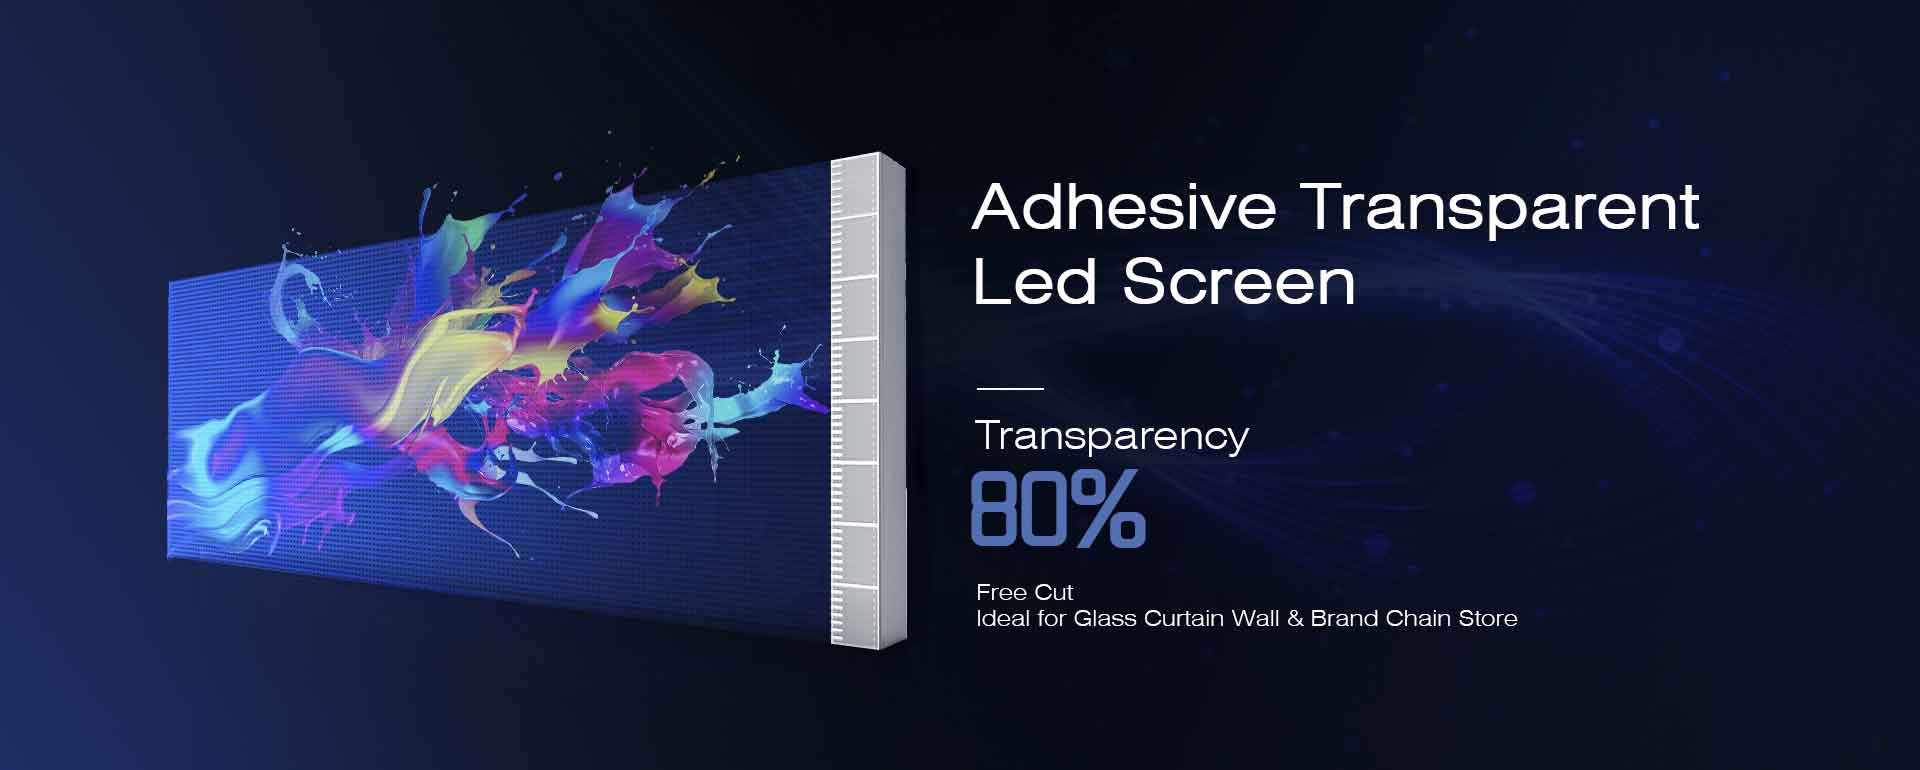 Adhesive Led Transparent Screen